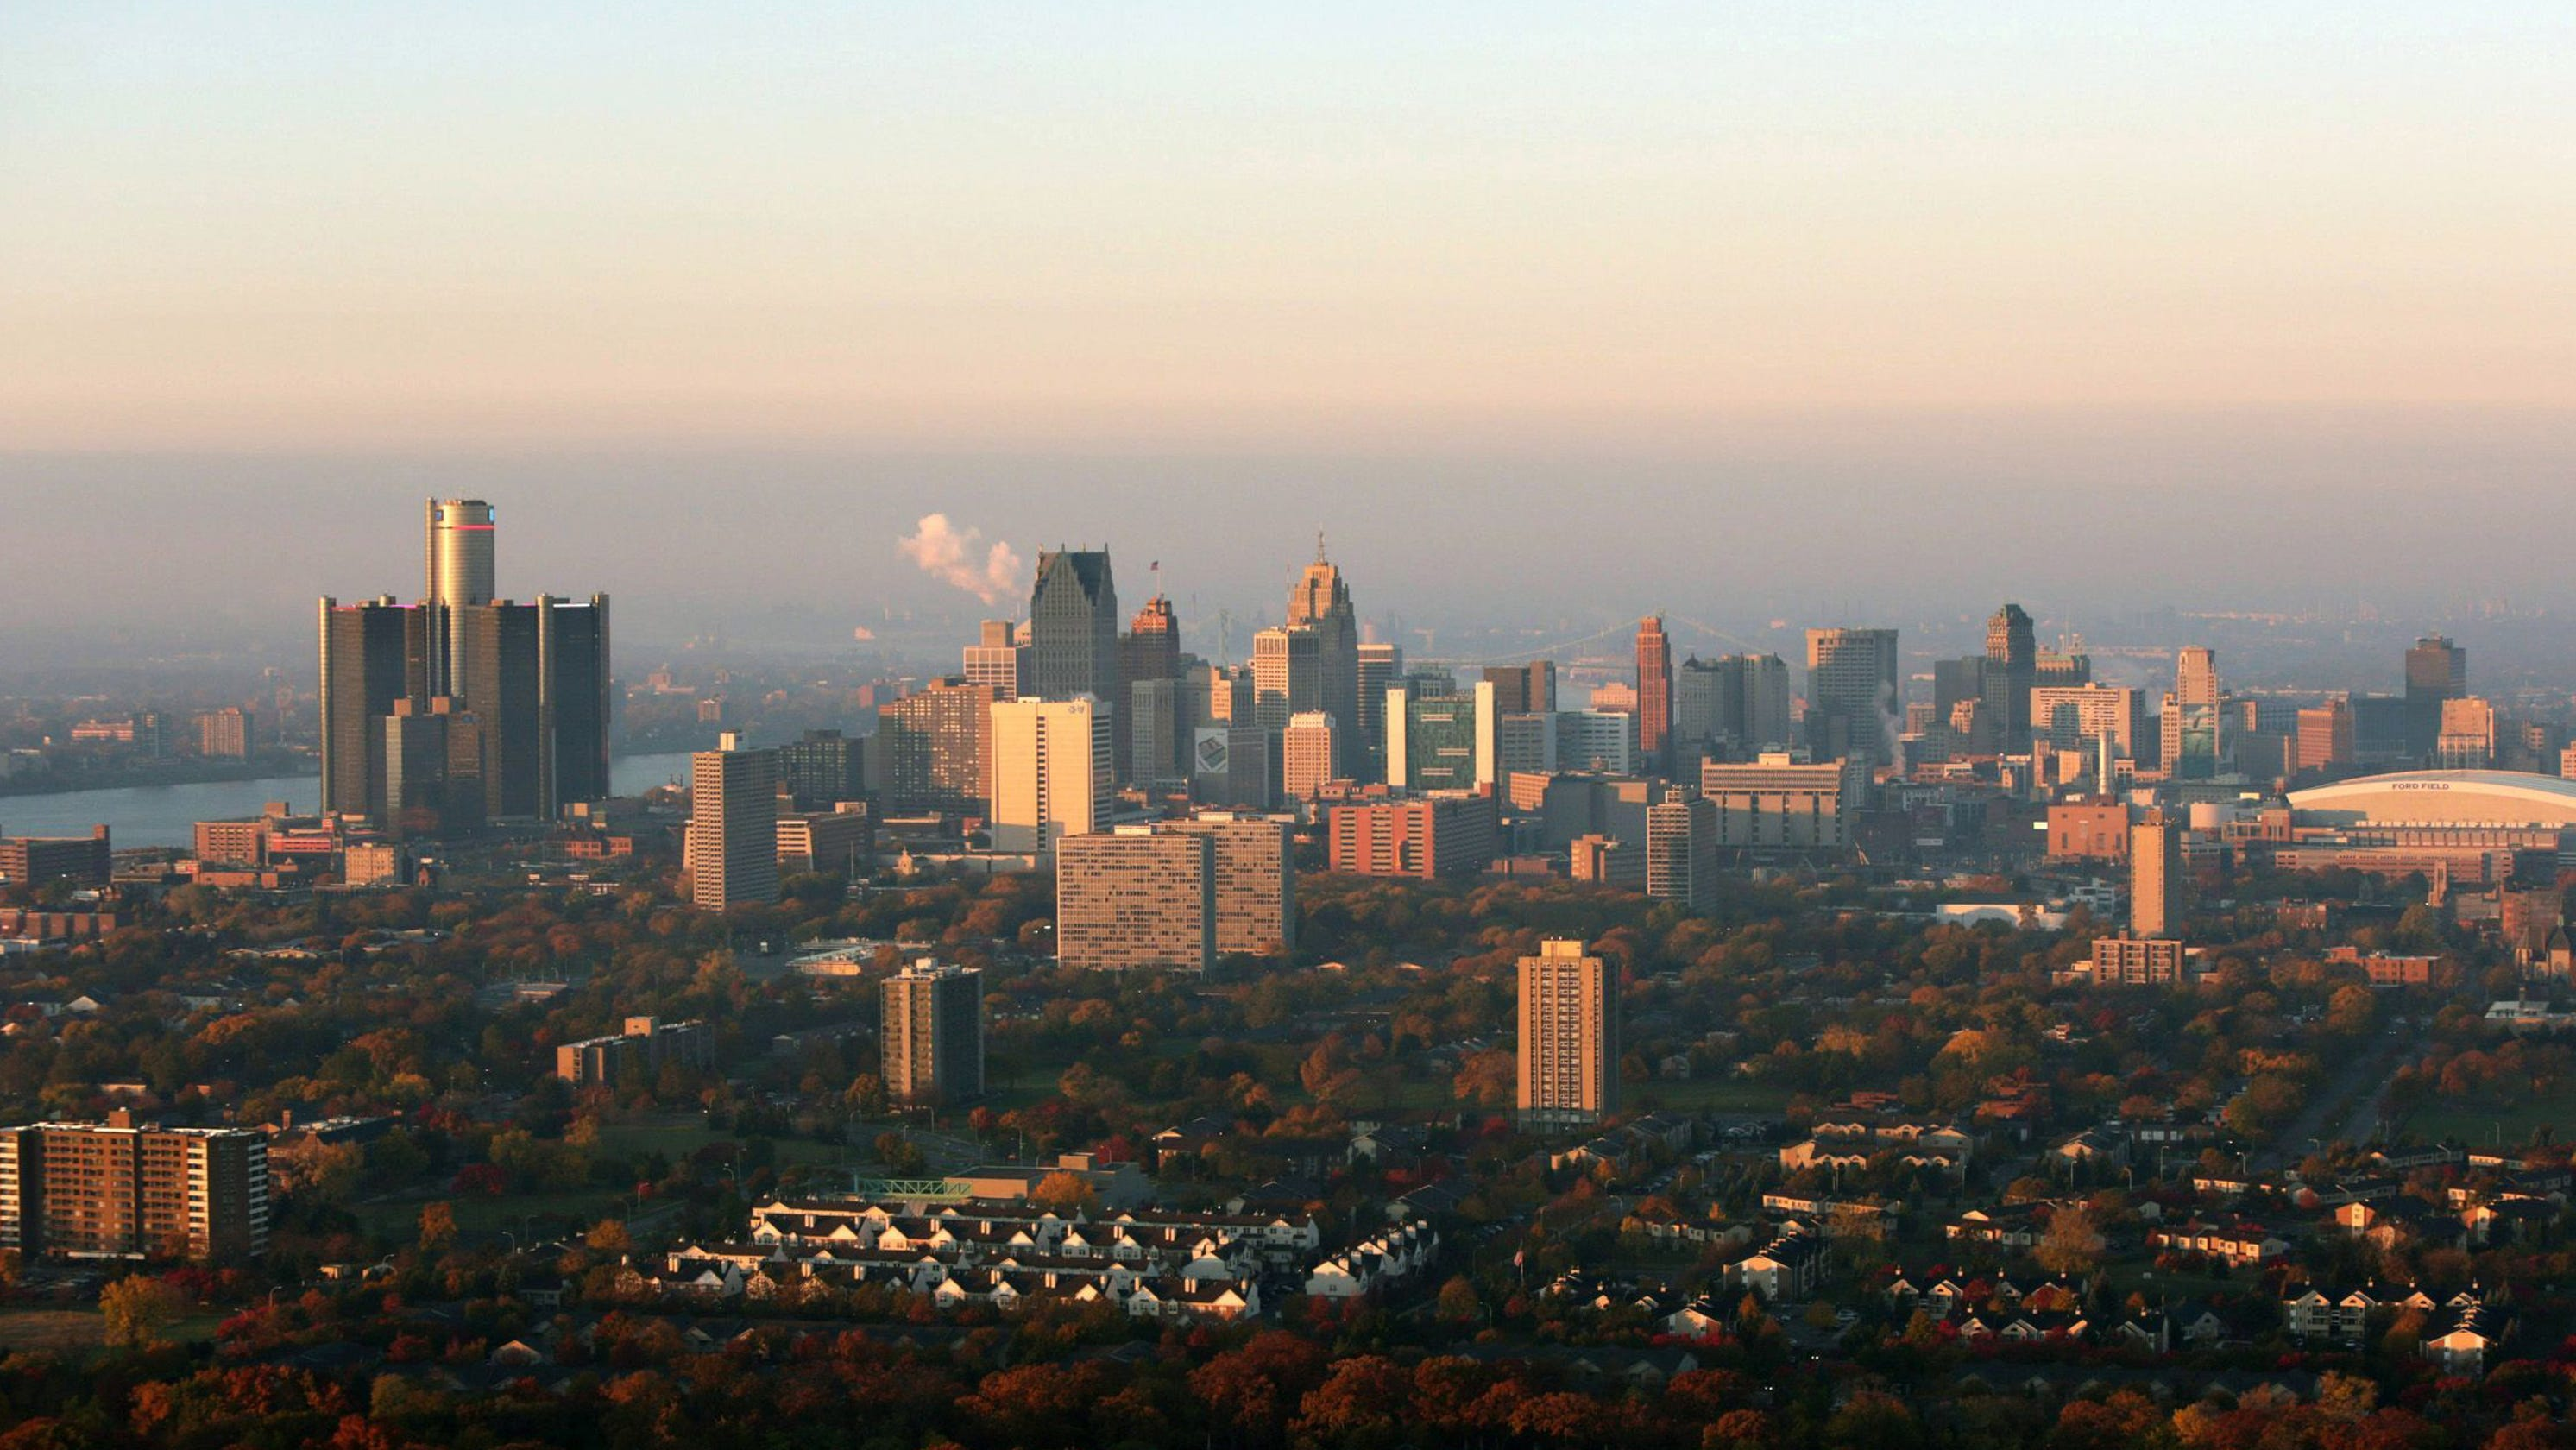 detroit bankruptcy 5 years later retirees still adjusting